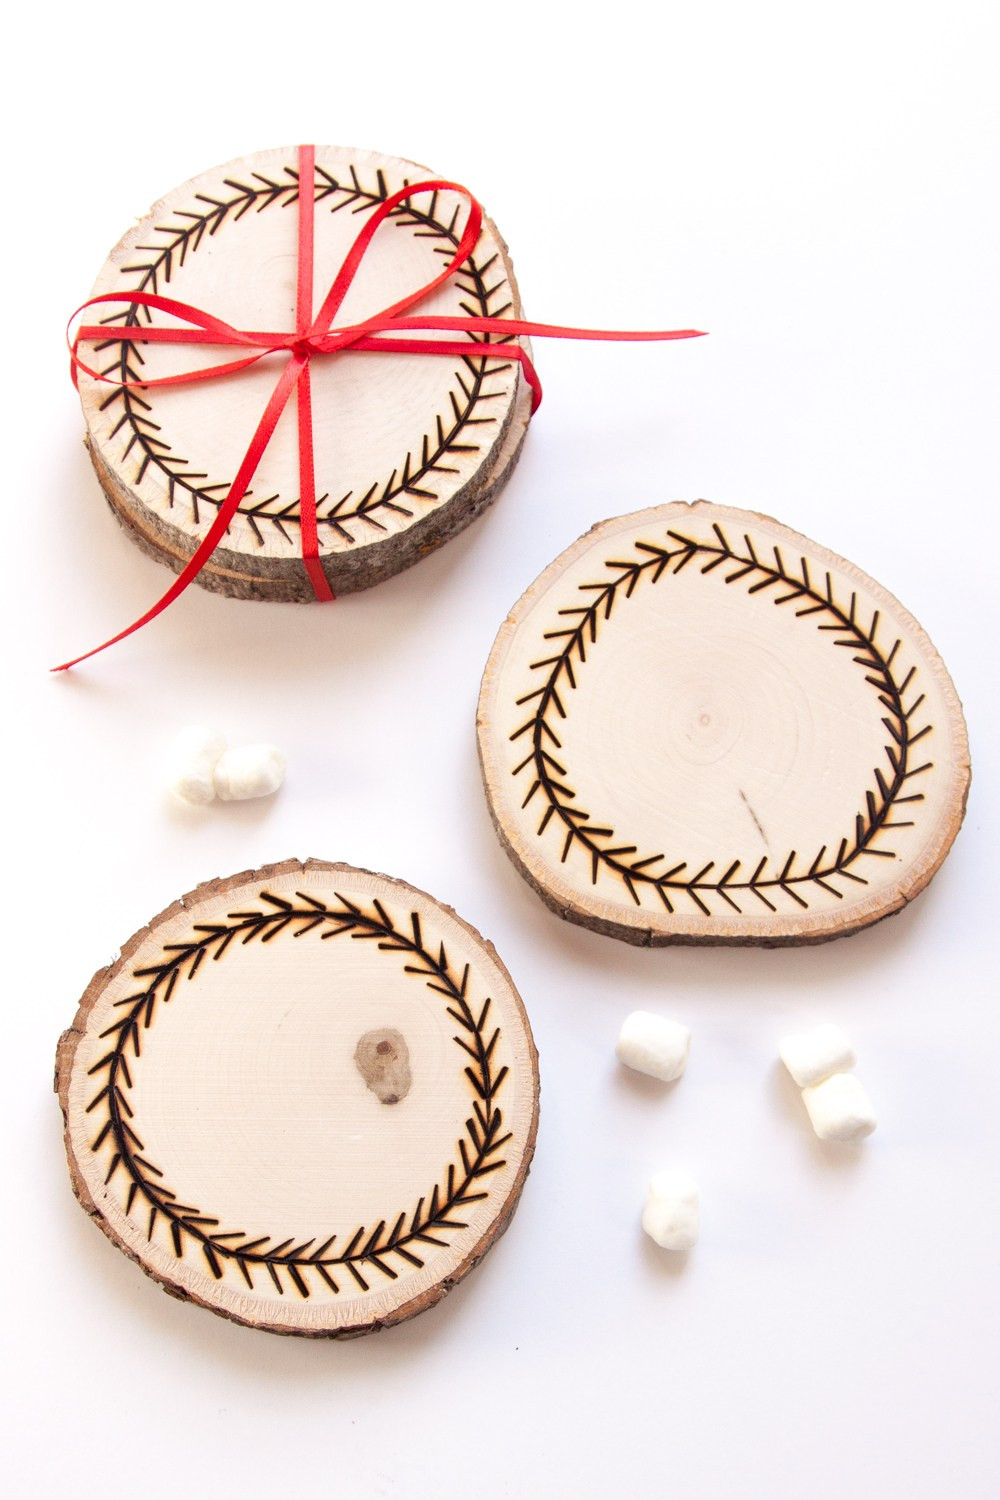 Best ideas about DIY Wood Burning . Save or Pin DIY Wood Burned Coasters Now.